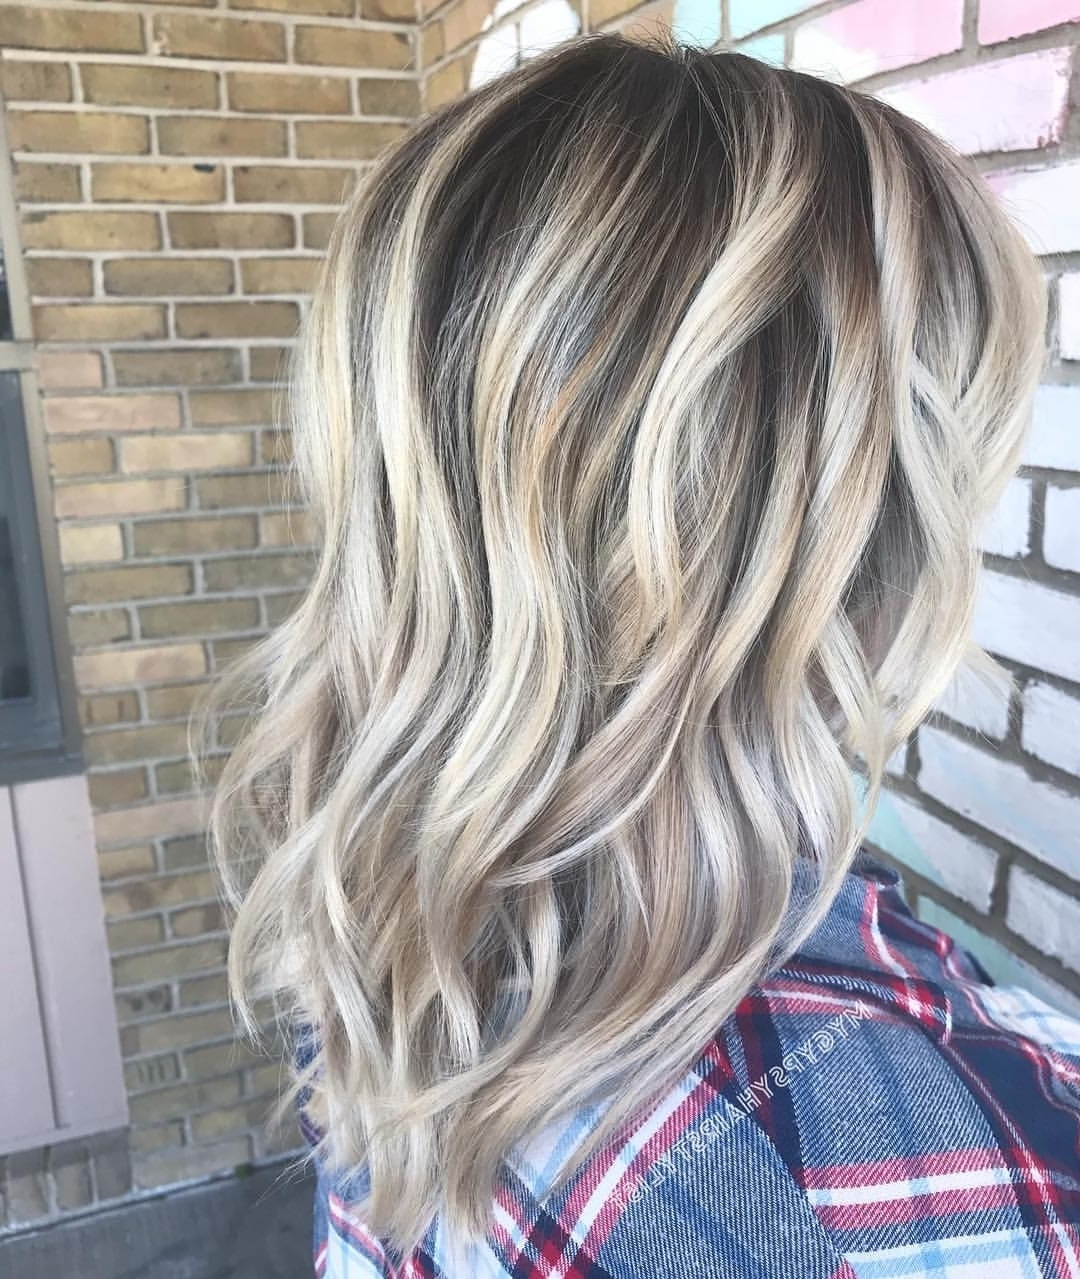 High Contrast Balayage/ Blonde Hair/ Blonde Balayage/ Blonde For Most Popular Contrasting Highlights Blonde Hairstyles (View 13 of 20)